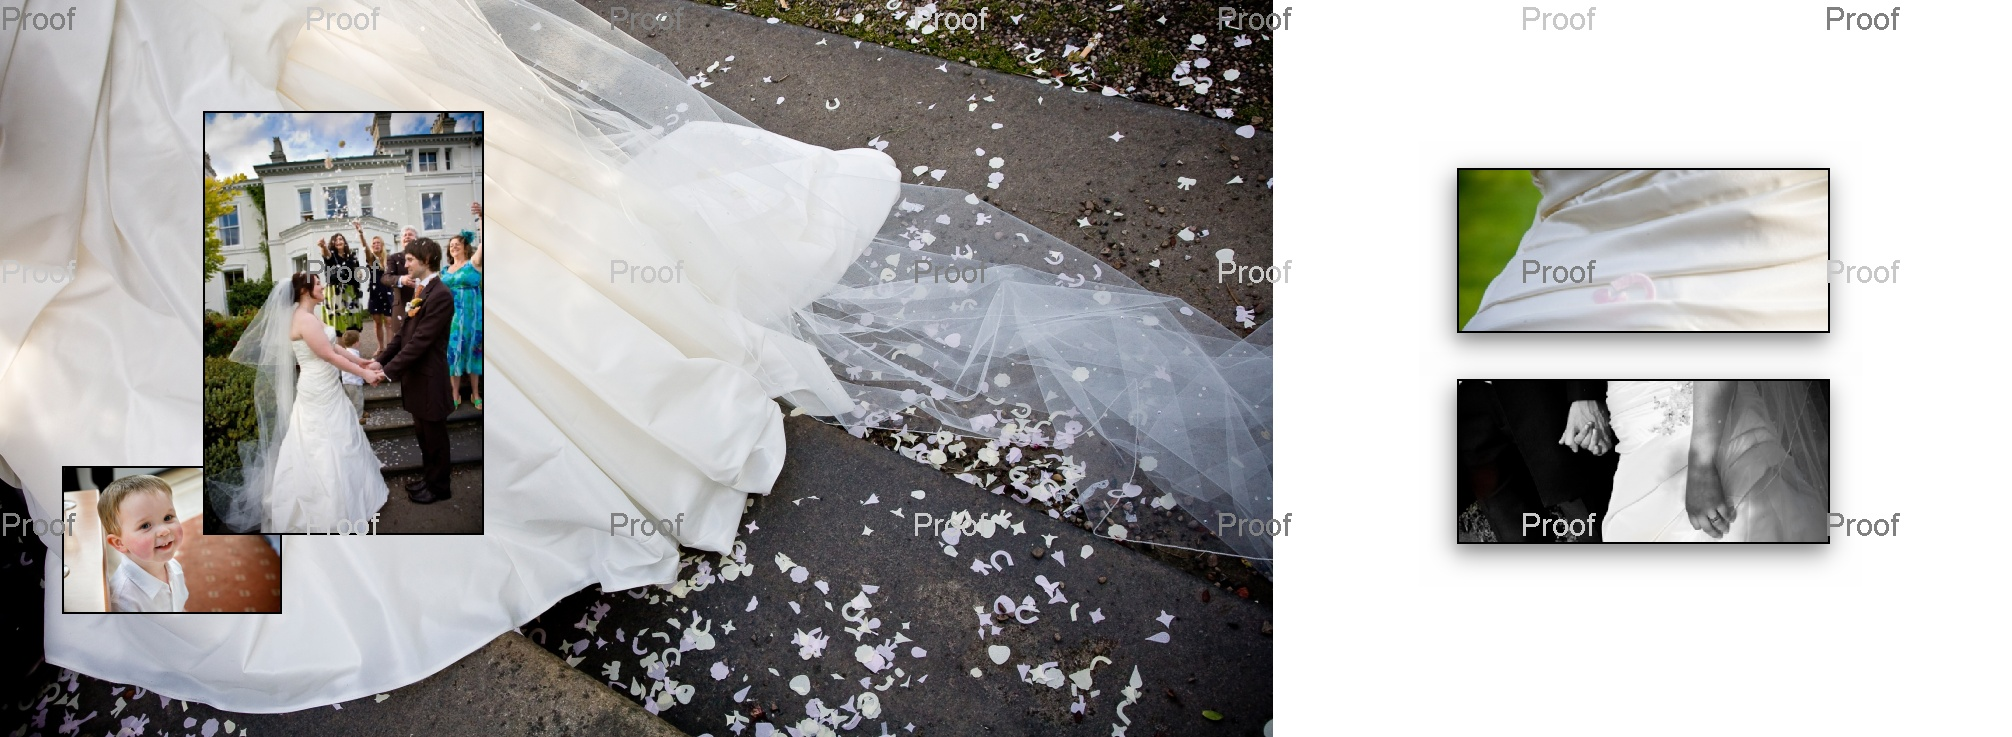 pages 64-65 wedding storybook album pictures of confetti and bridal train